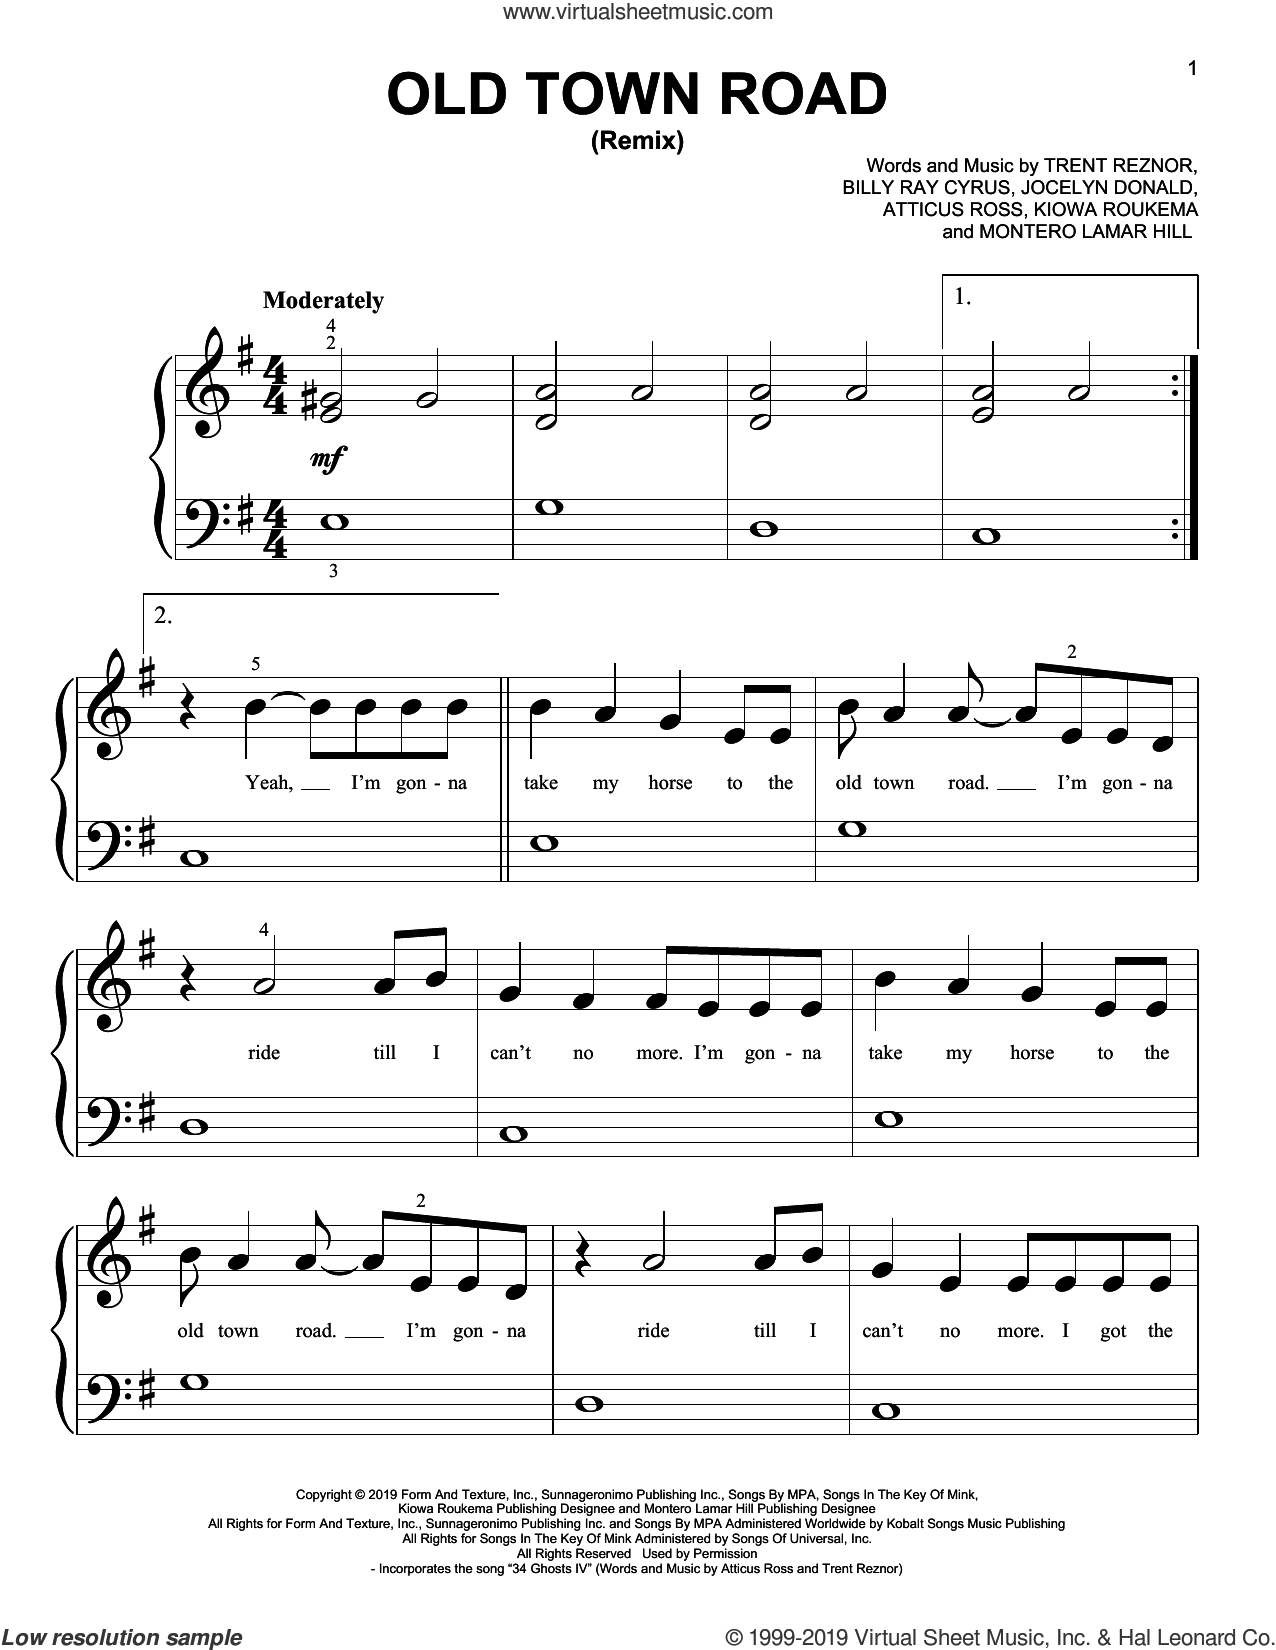 Old Town Road (Remix) sheet music for piano solo (big note book) by Lil Nas X feat. Billy Ray Cyrus, Atticus Ross, Billy Ray Cyrus, Jocelyn Donald, Kiowa Roukema, Montero Lamar Hill and Trent Reznor, easy piano (big note book)